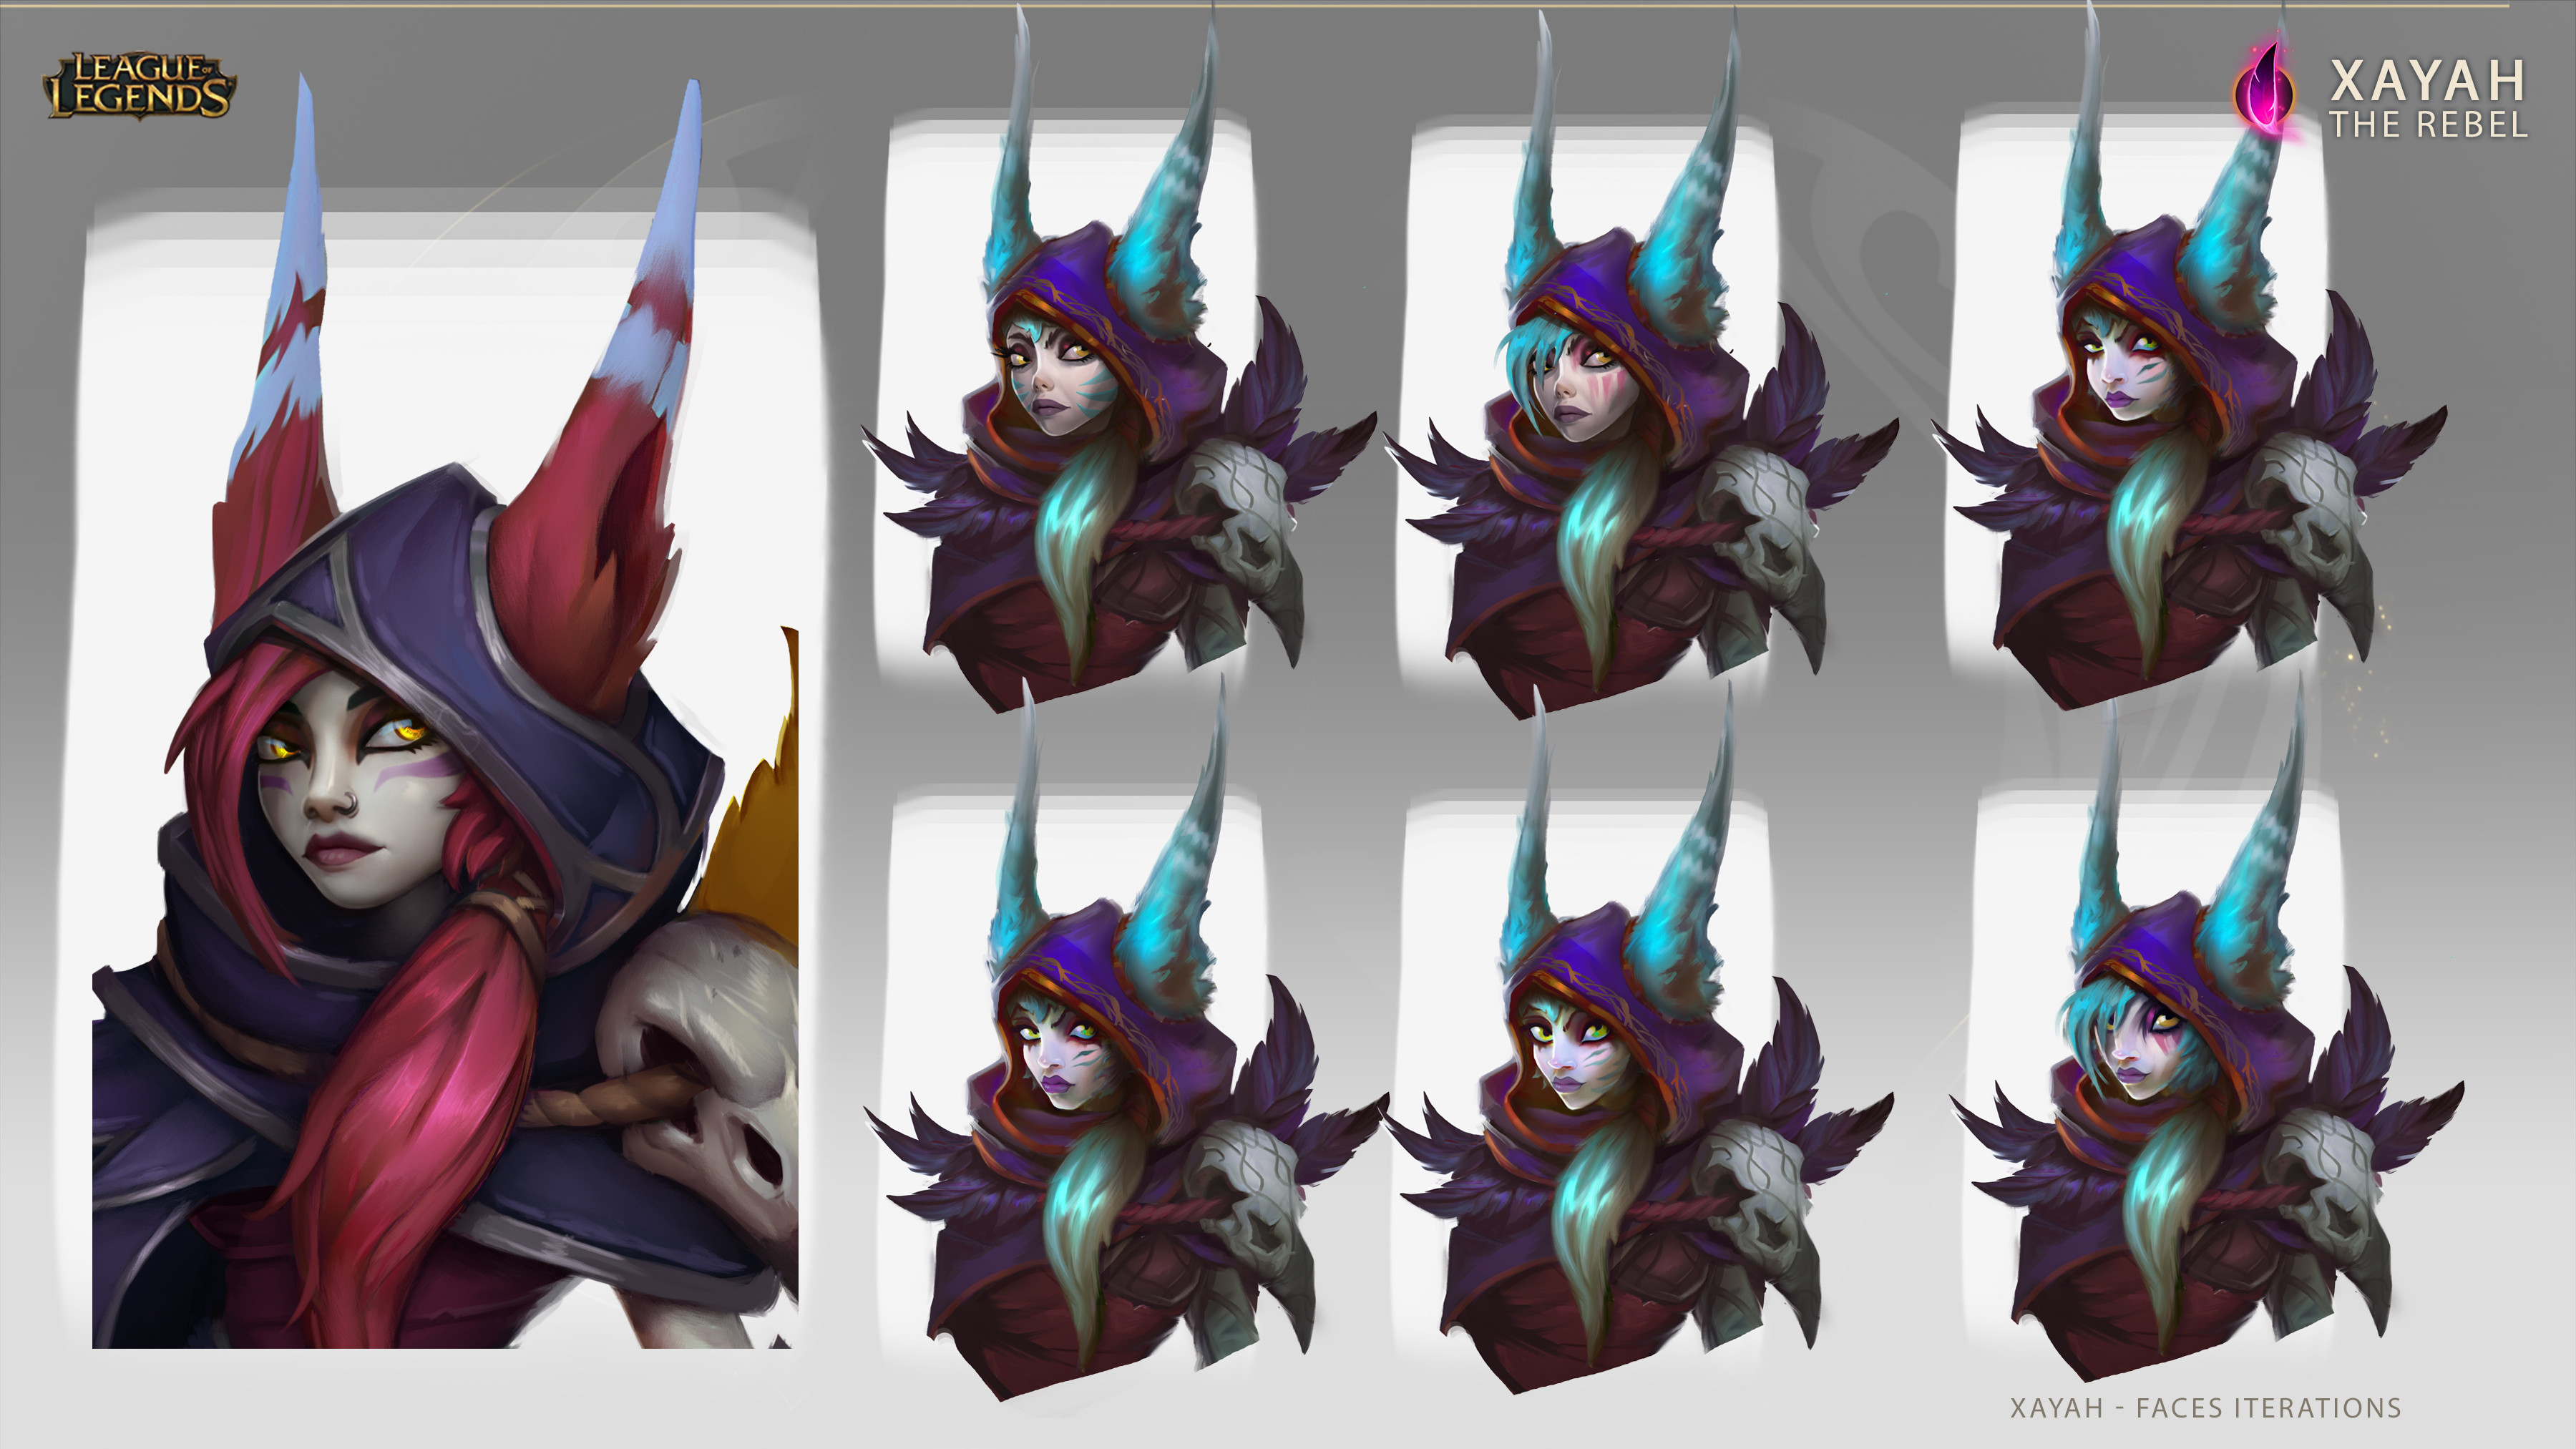 Different faces iterations I did for Xayah before the final one.